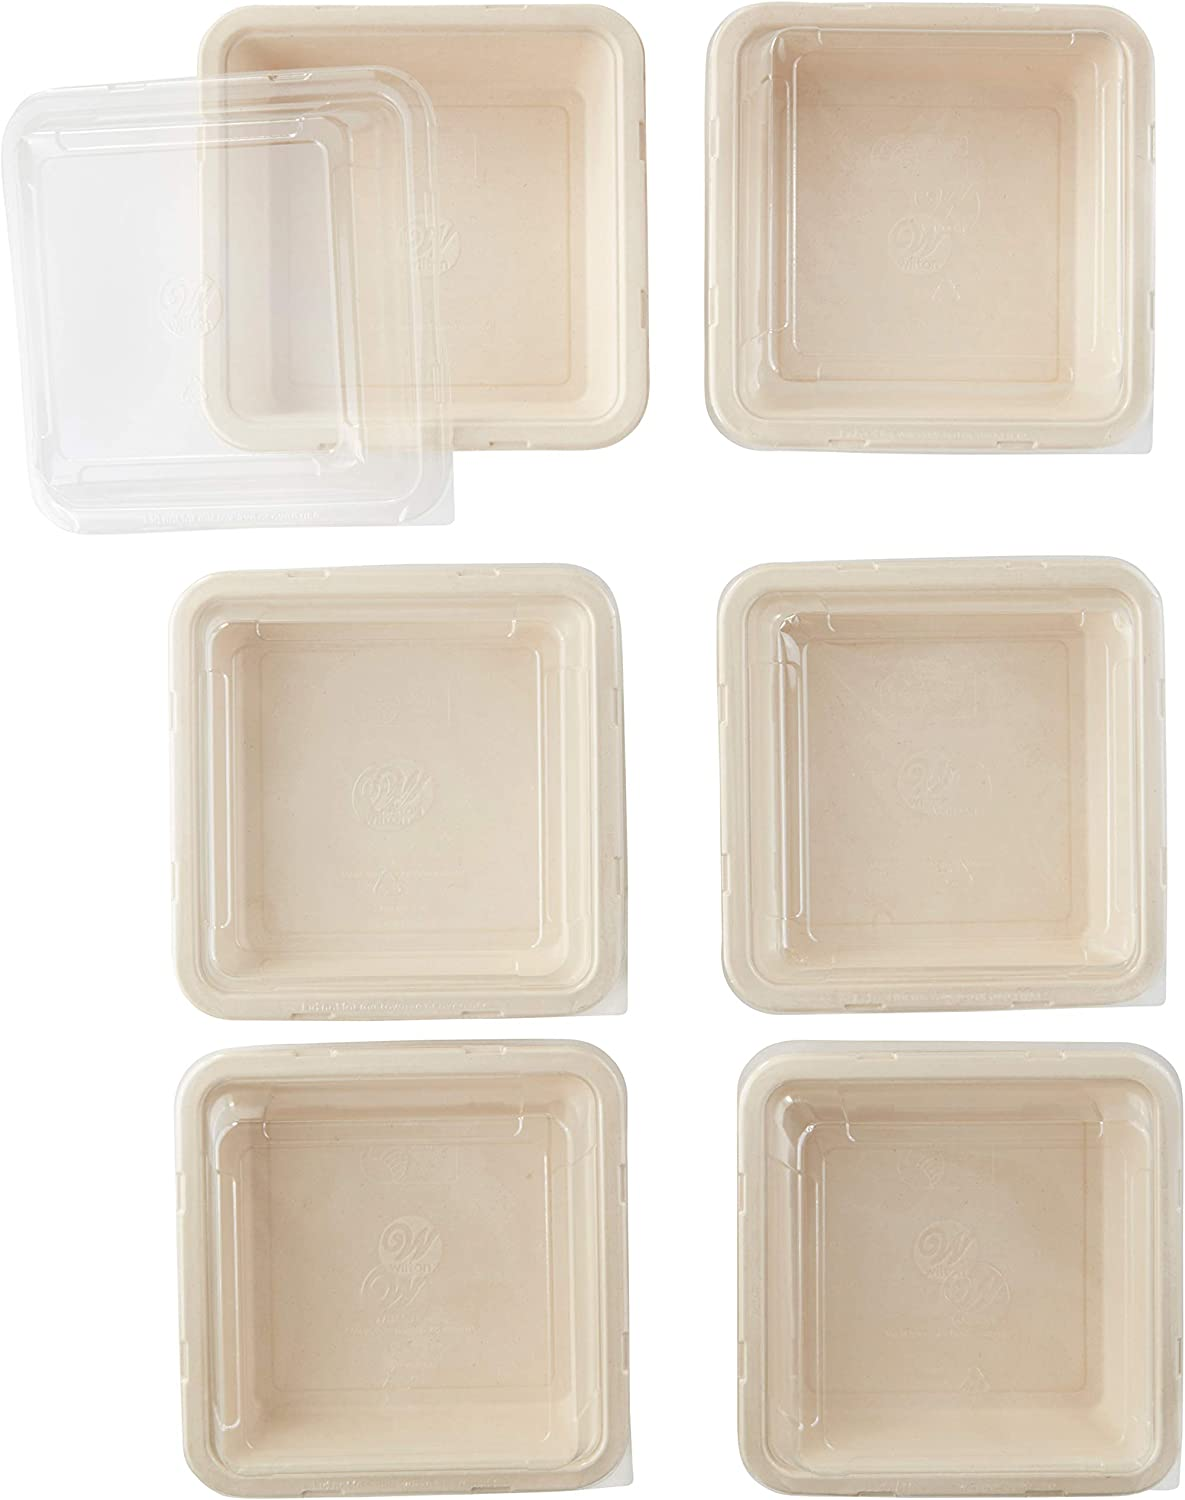 Wilton Disposable Square Baking Pans With Lids, 6-Count